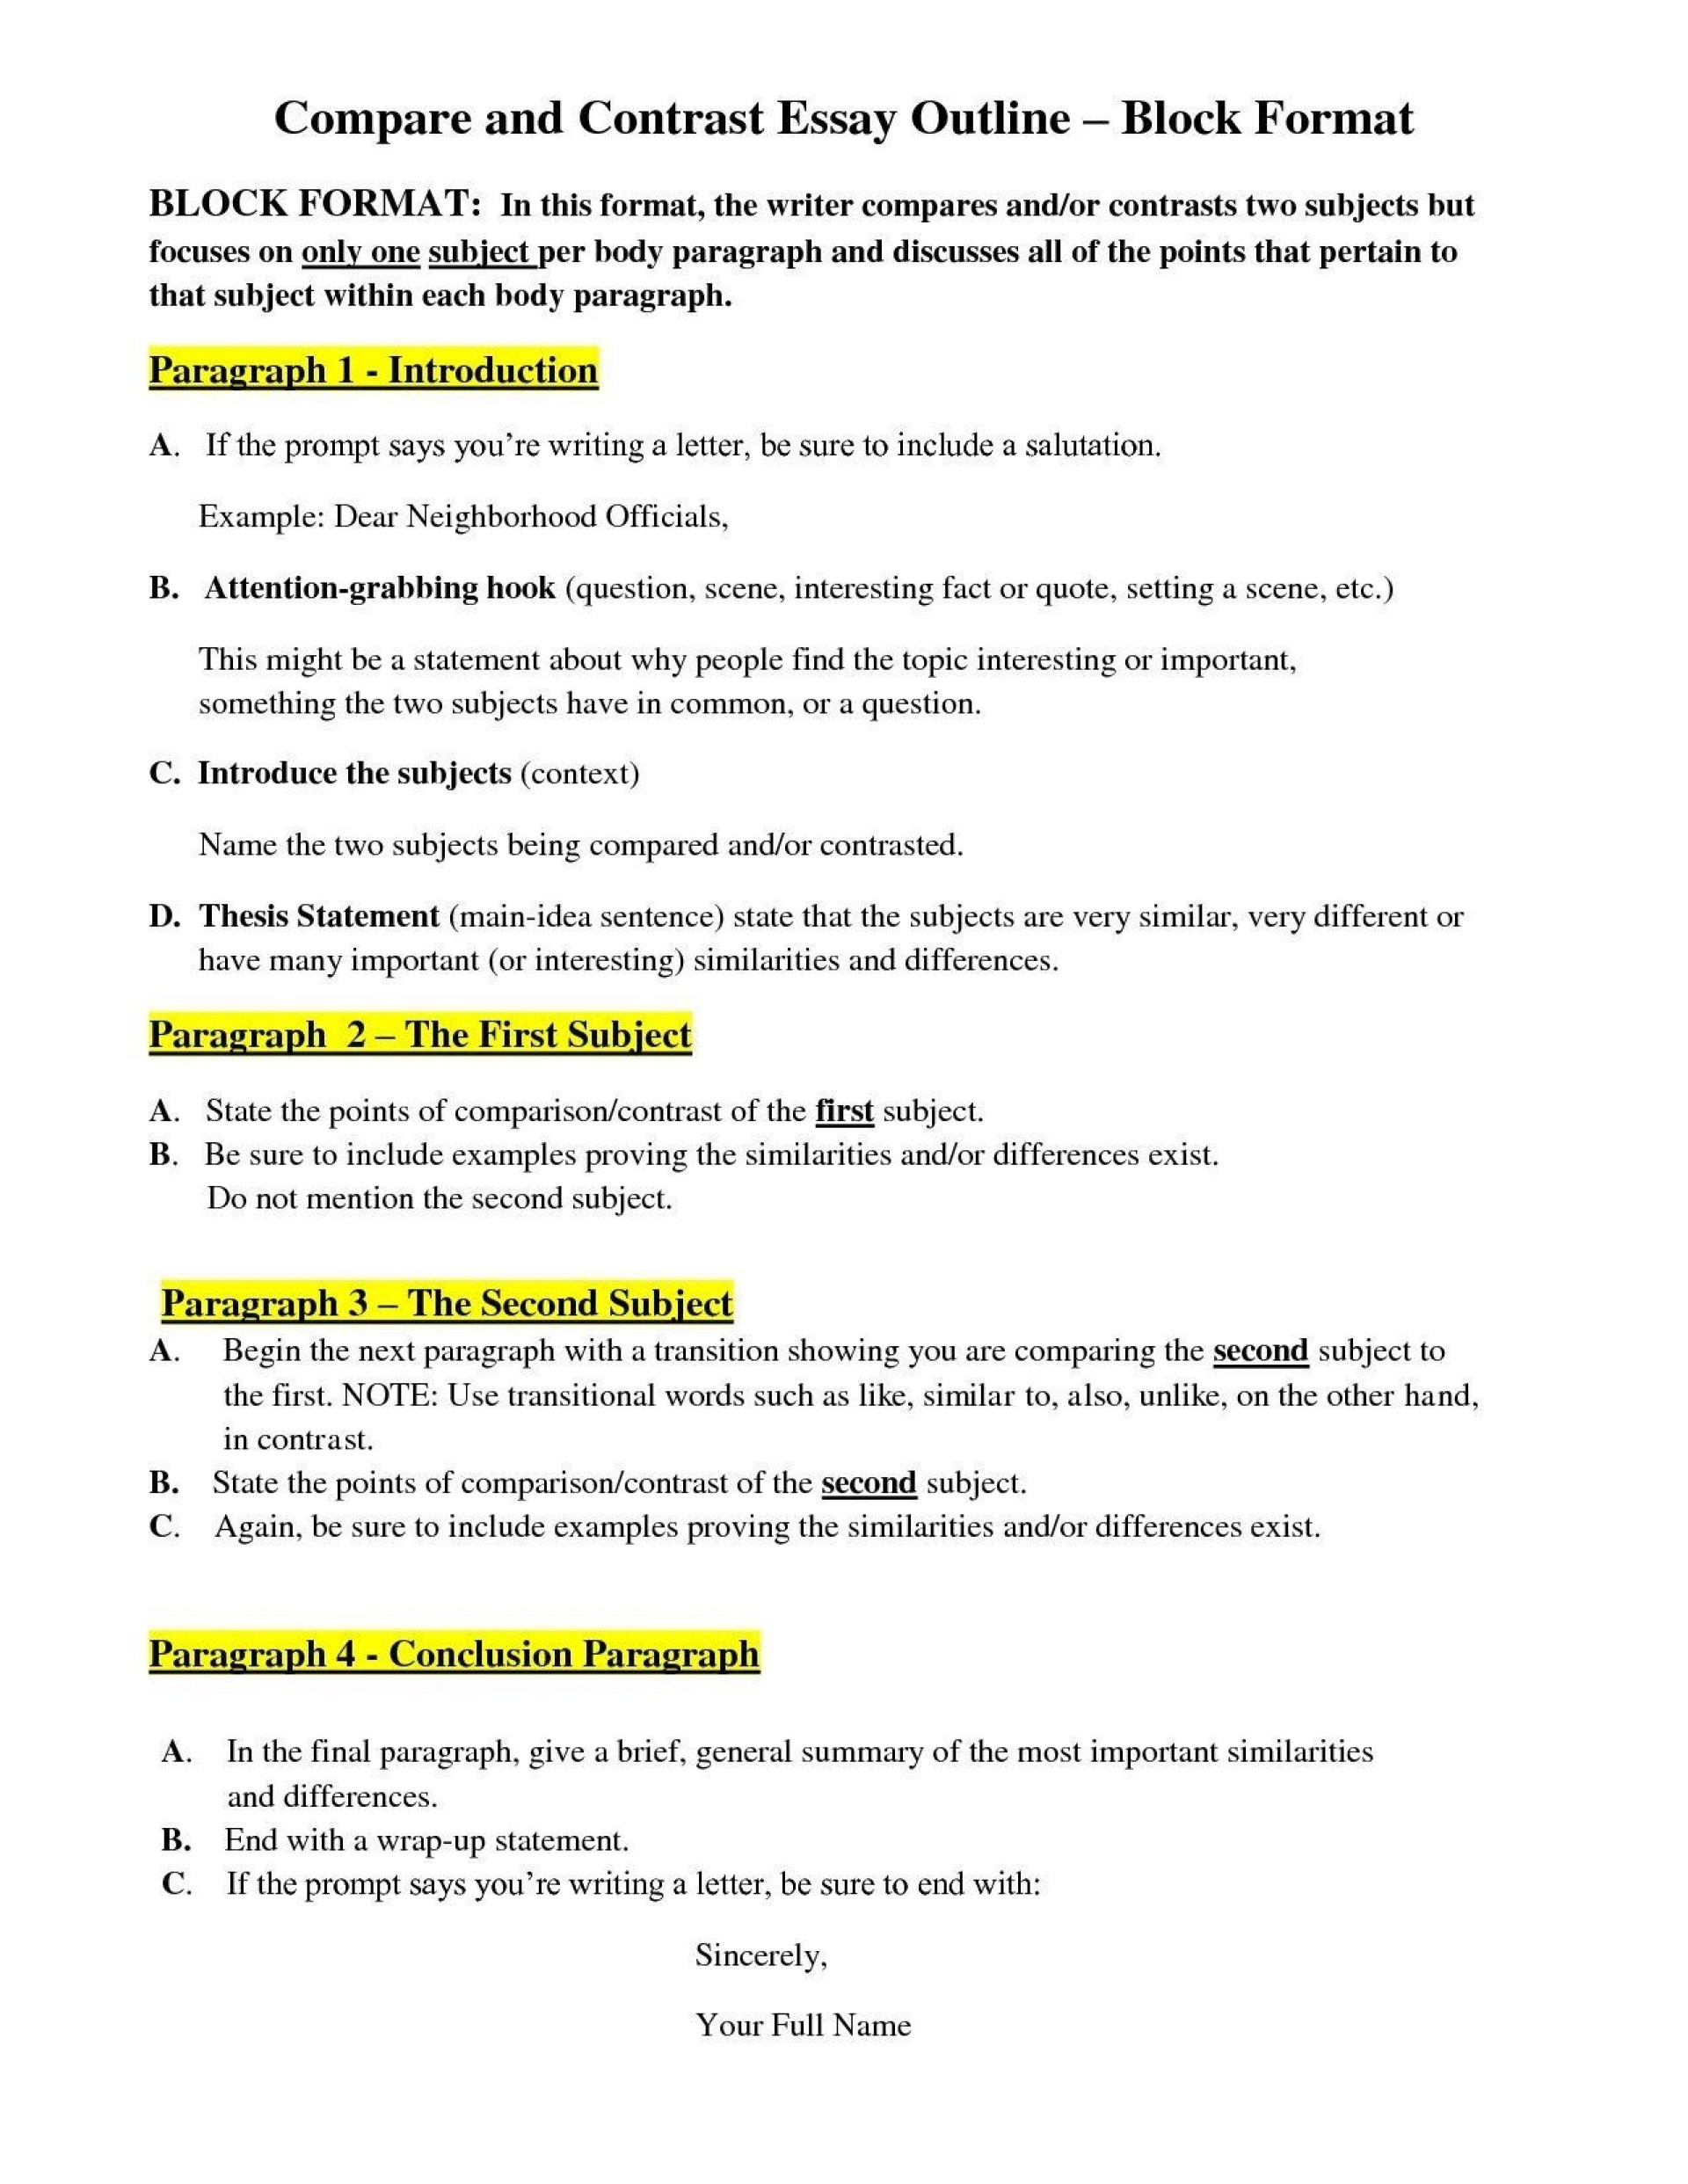 014 Essay Examplempare Andntrastmparison Best Examples Of Scenario In 6th Grade An Goo 3rd Food 5th Middle School Block Format Pdf High 4th Vs Striking Compare And Contrast Example 7th Comparison Free Elementary 1920